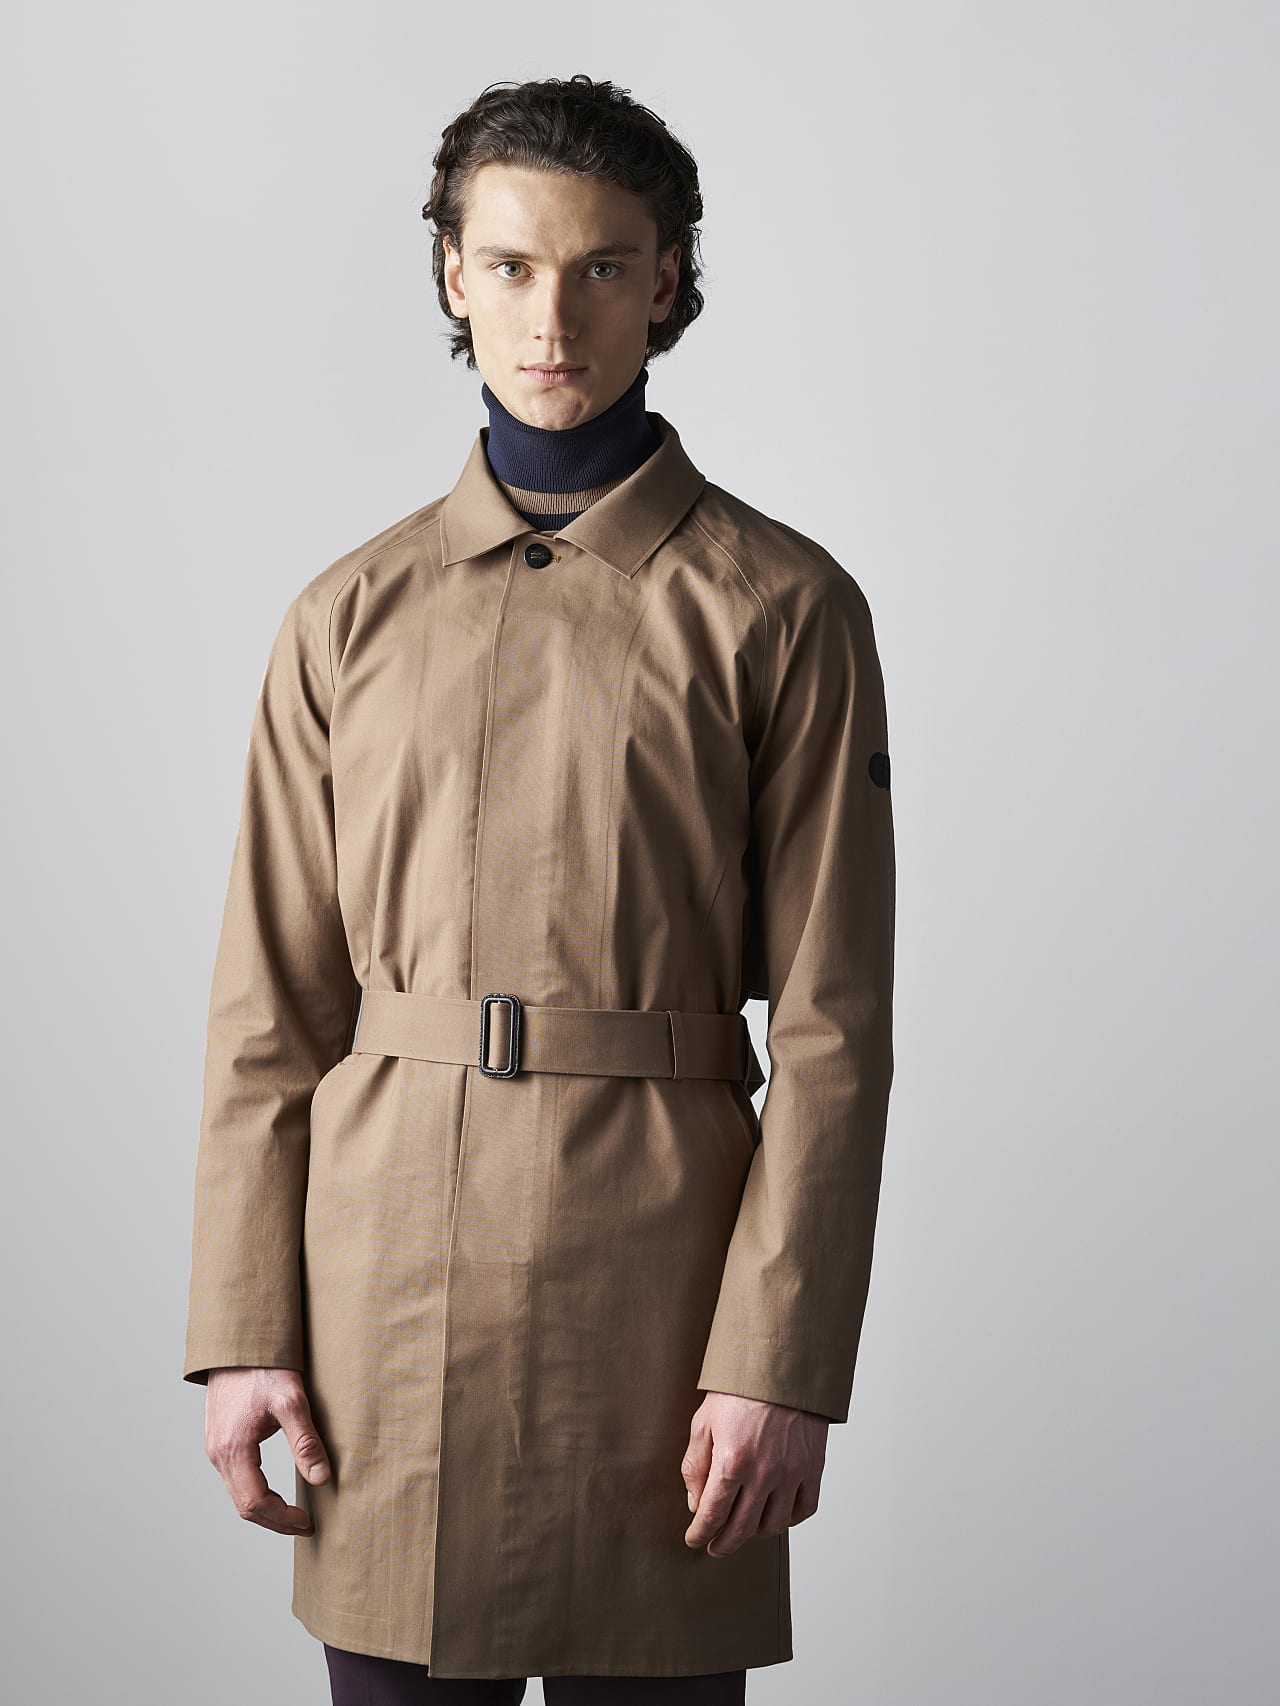 OMANA V1.Y5.02 Packable and Waterproof Trench Coat gold Model shot Alpha Tauri